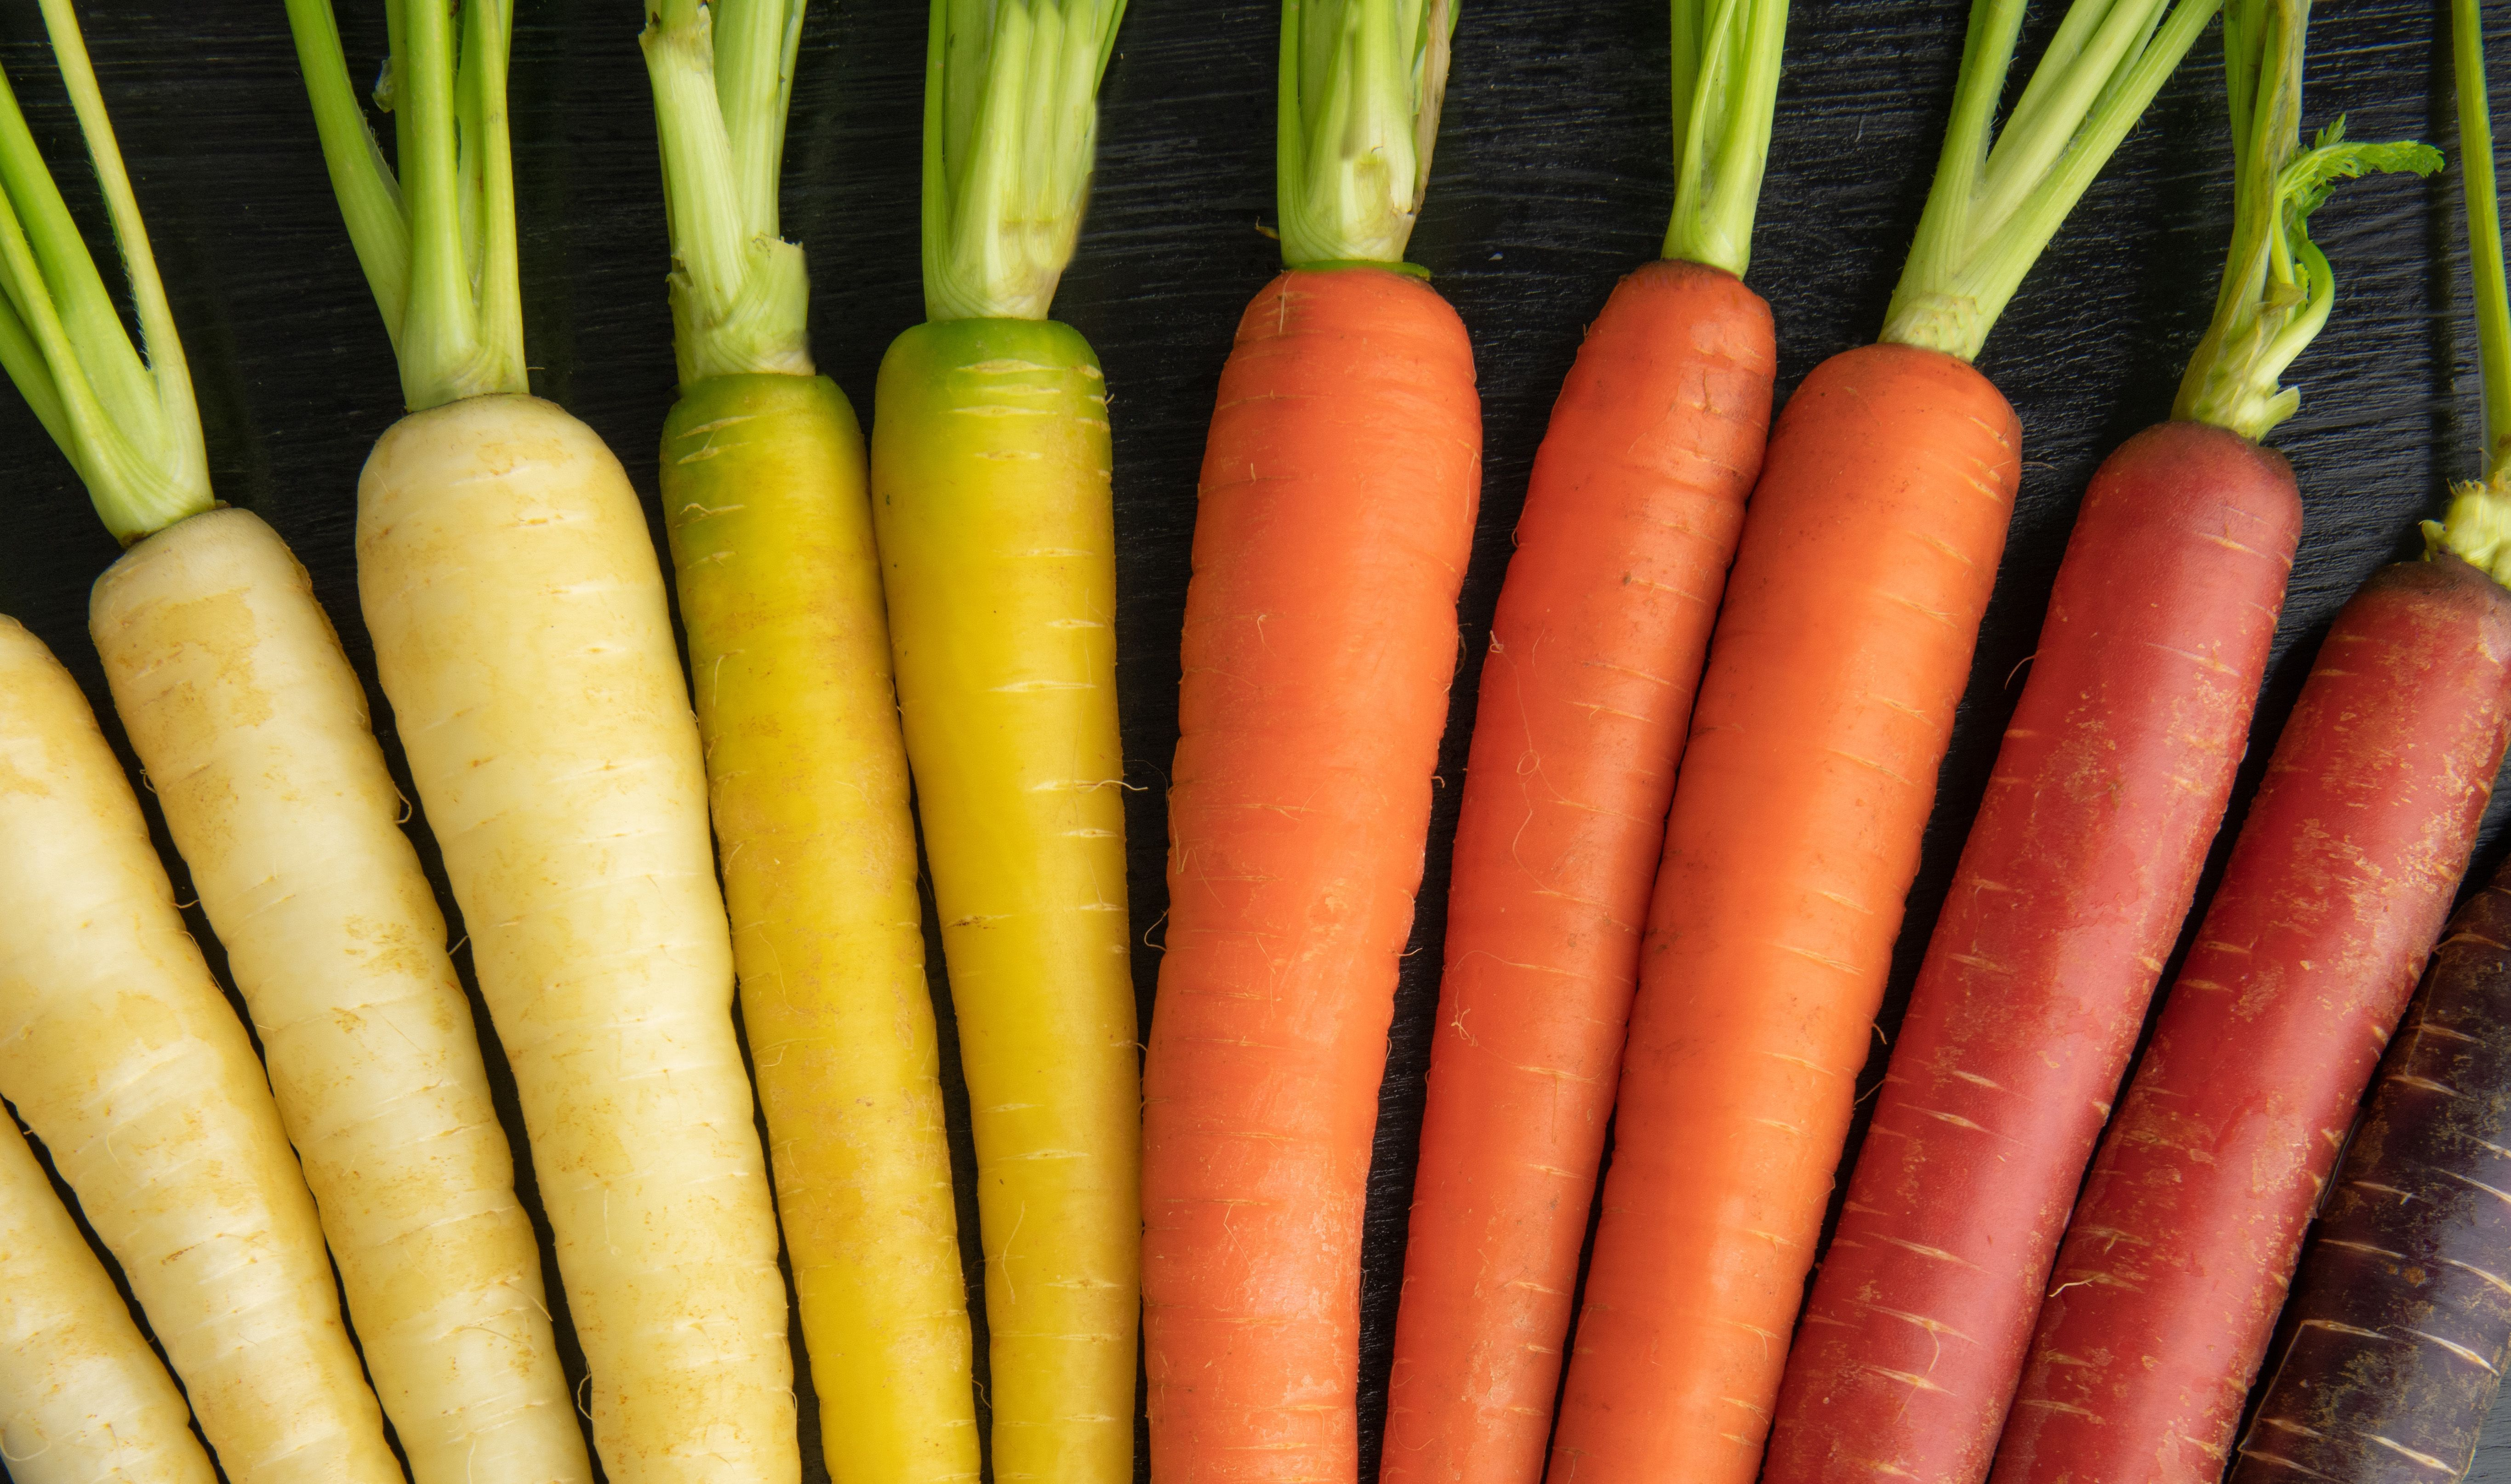 Happy St Patrick S Day We Hope Our Rainbow Carrots Lead You To A Pot Of Gold Rainbow Carrots Organic Vegetables Carrots